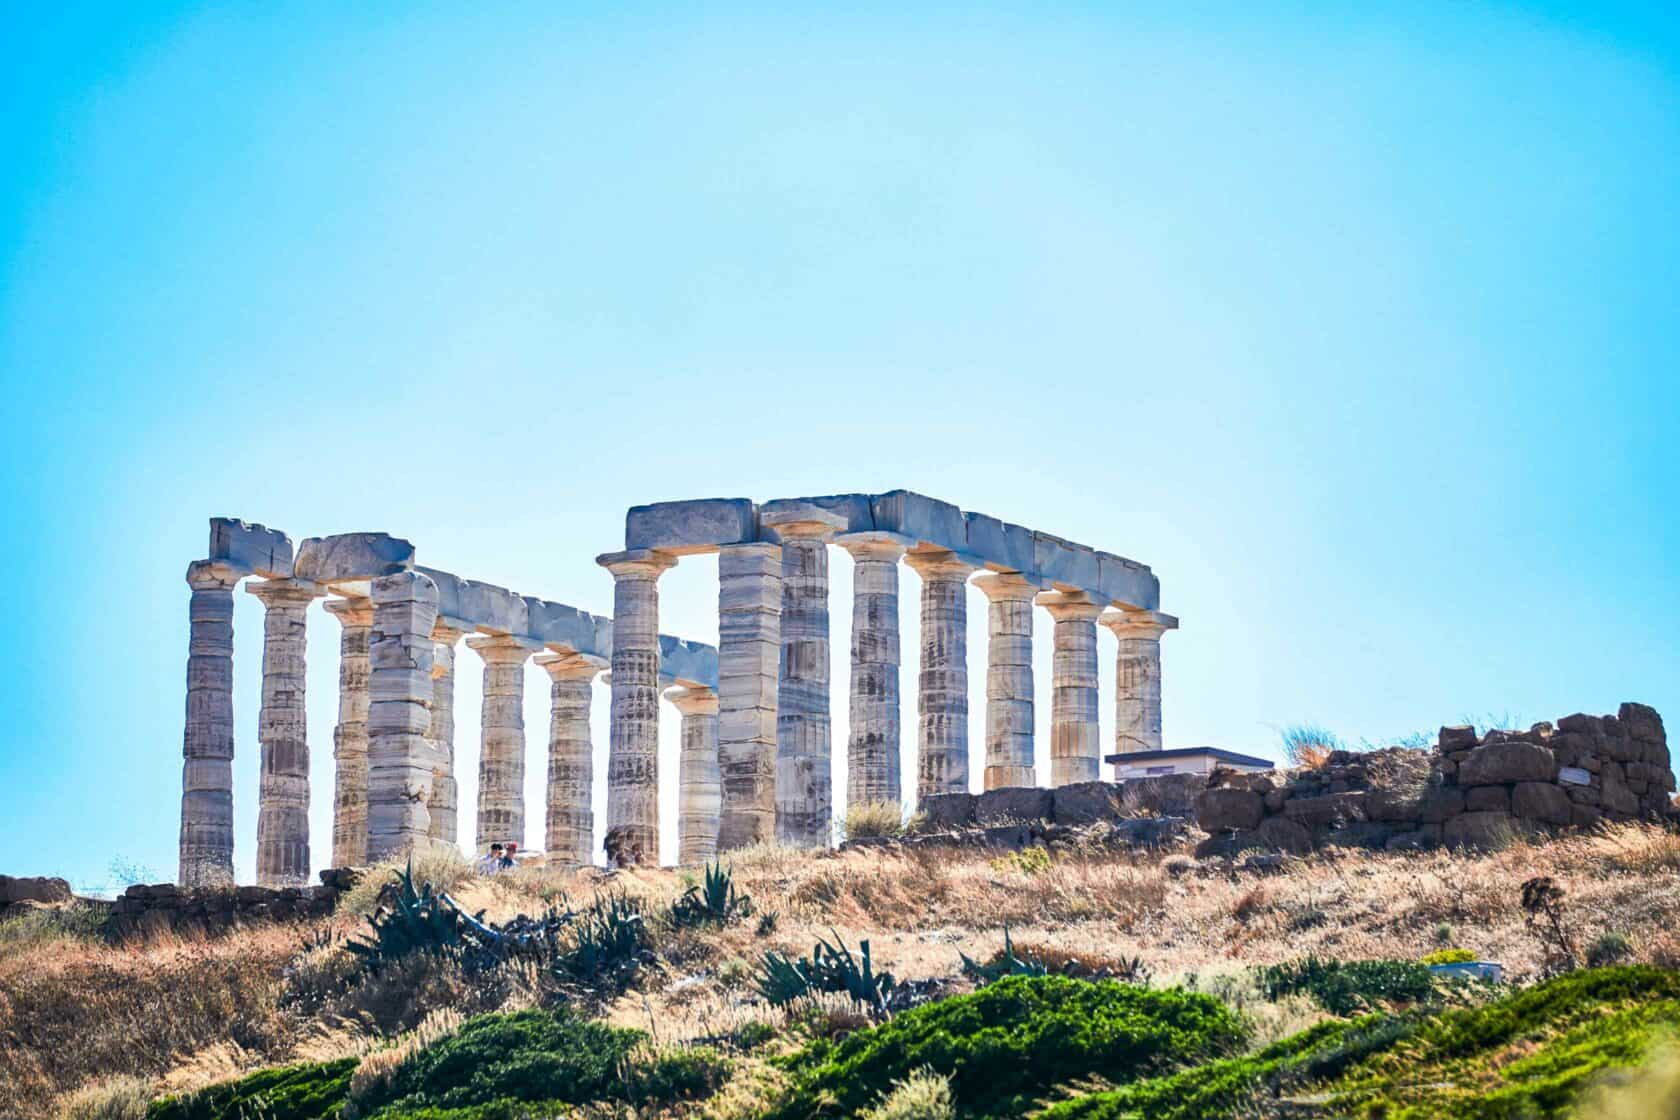 Greek ruins on a sunny day.